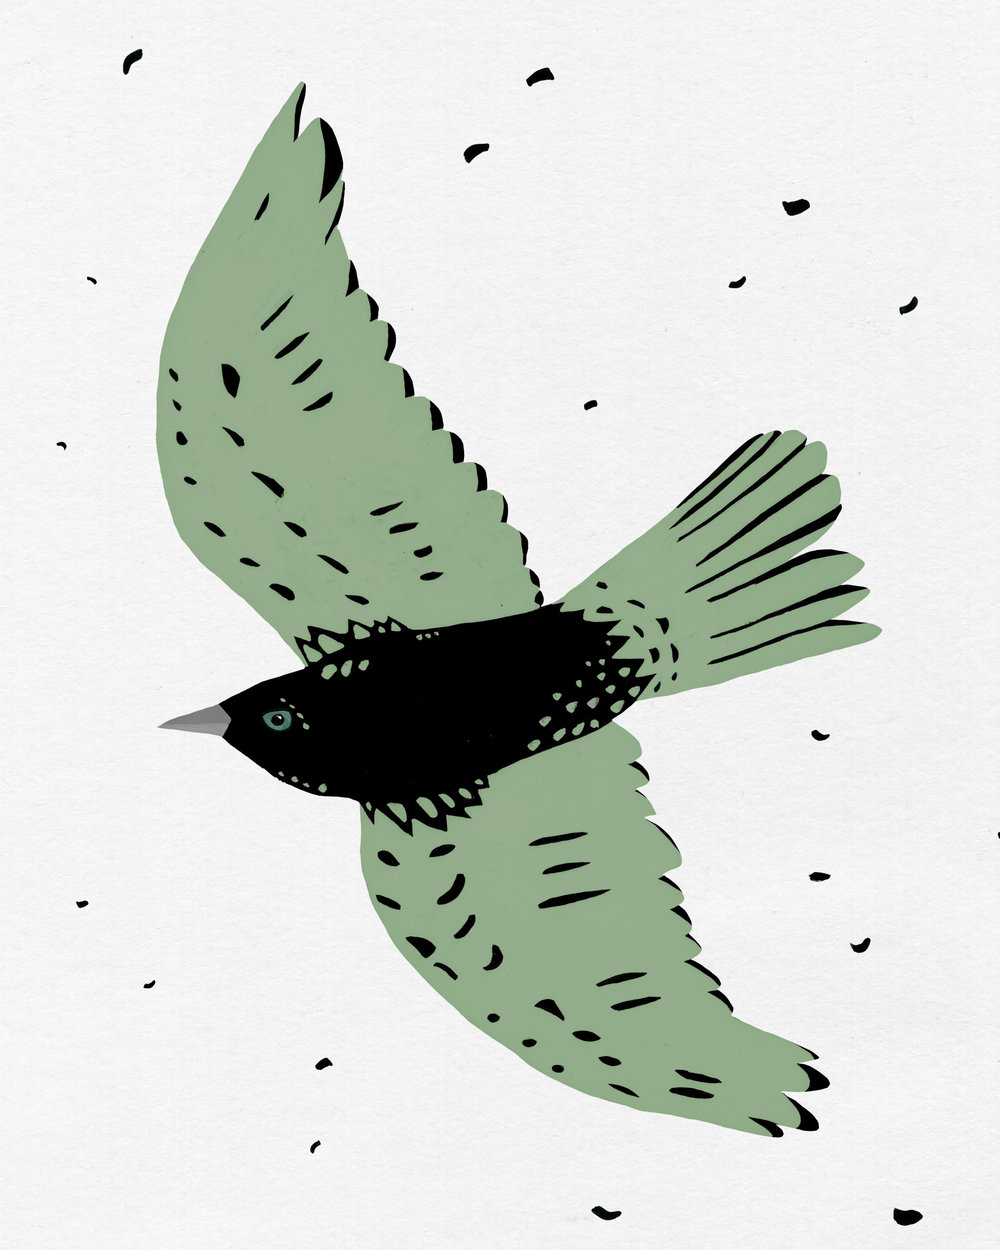 patterned bird series - free bird